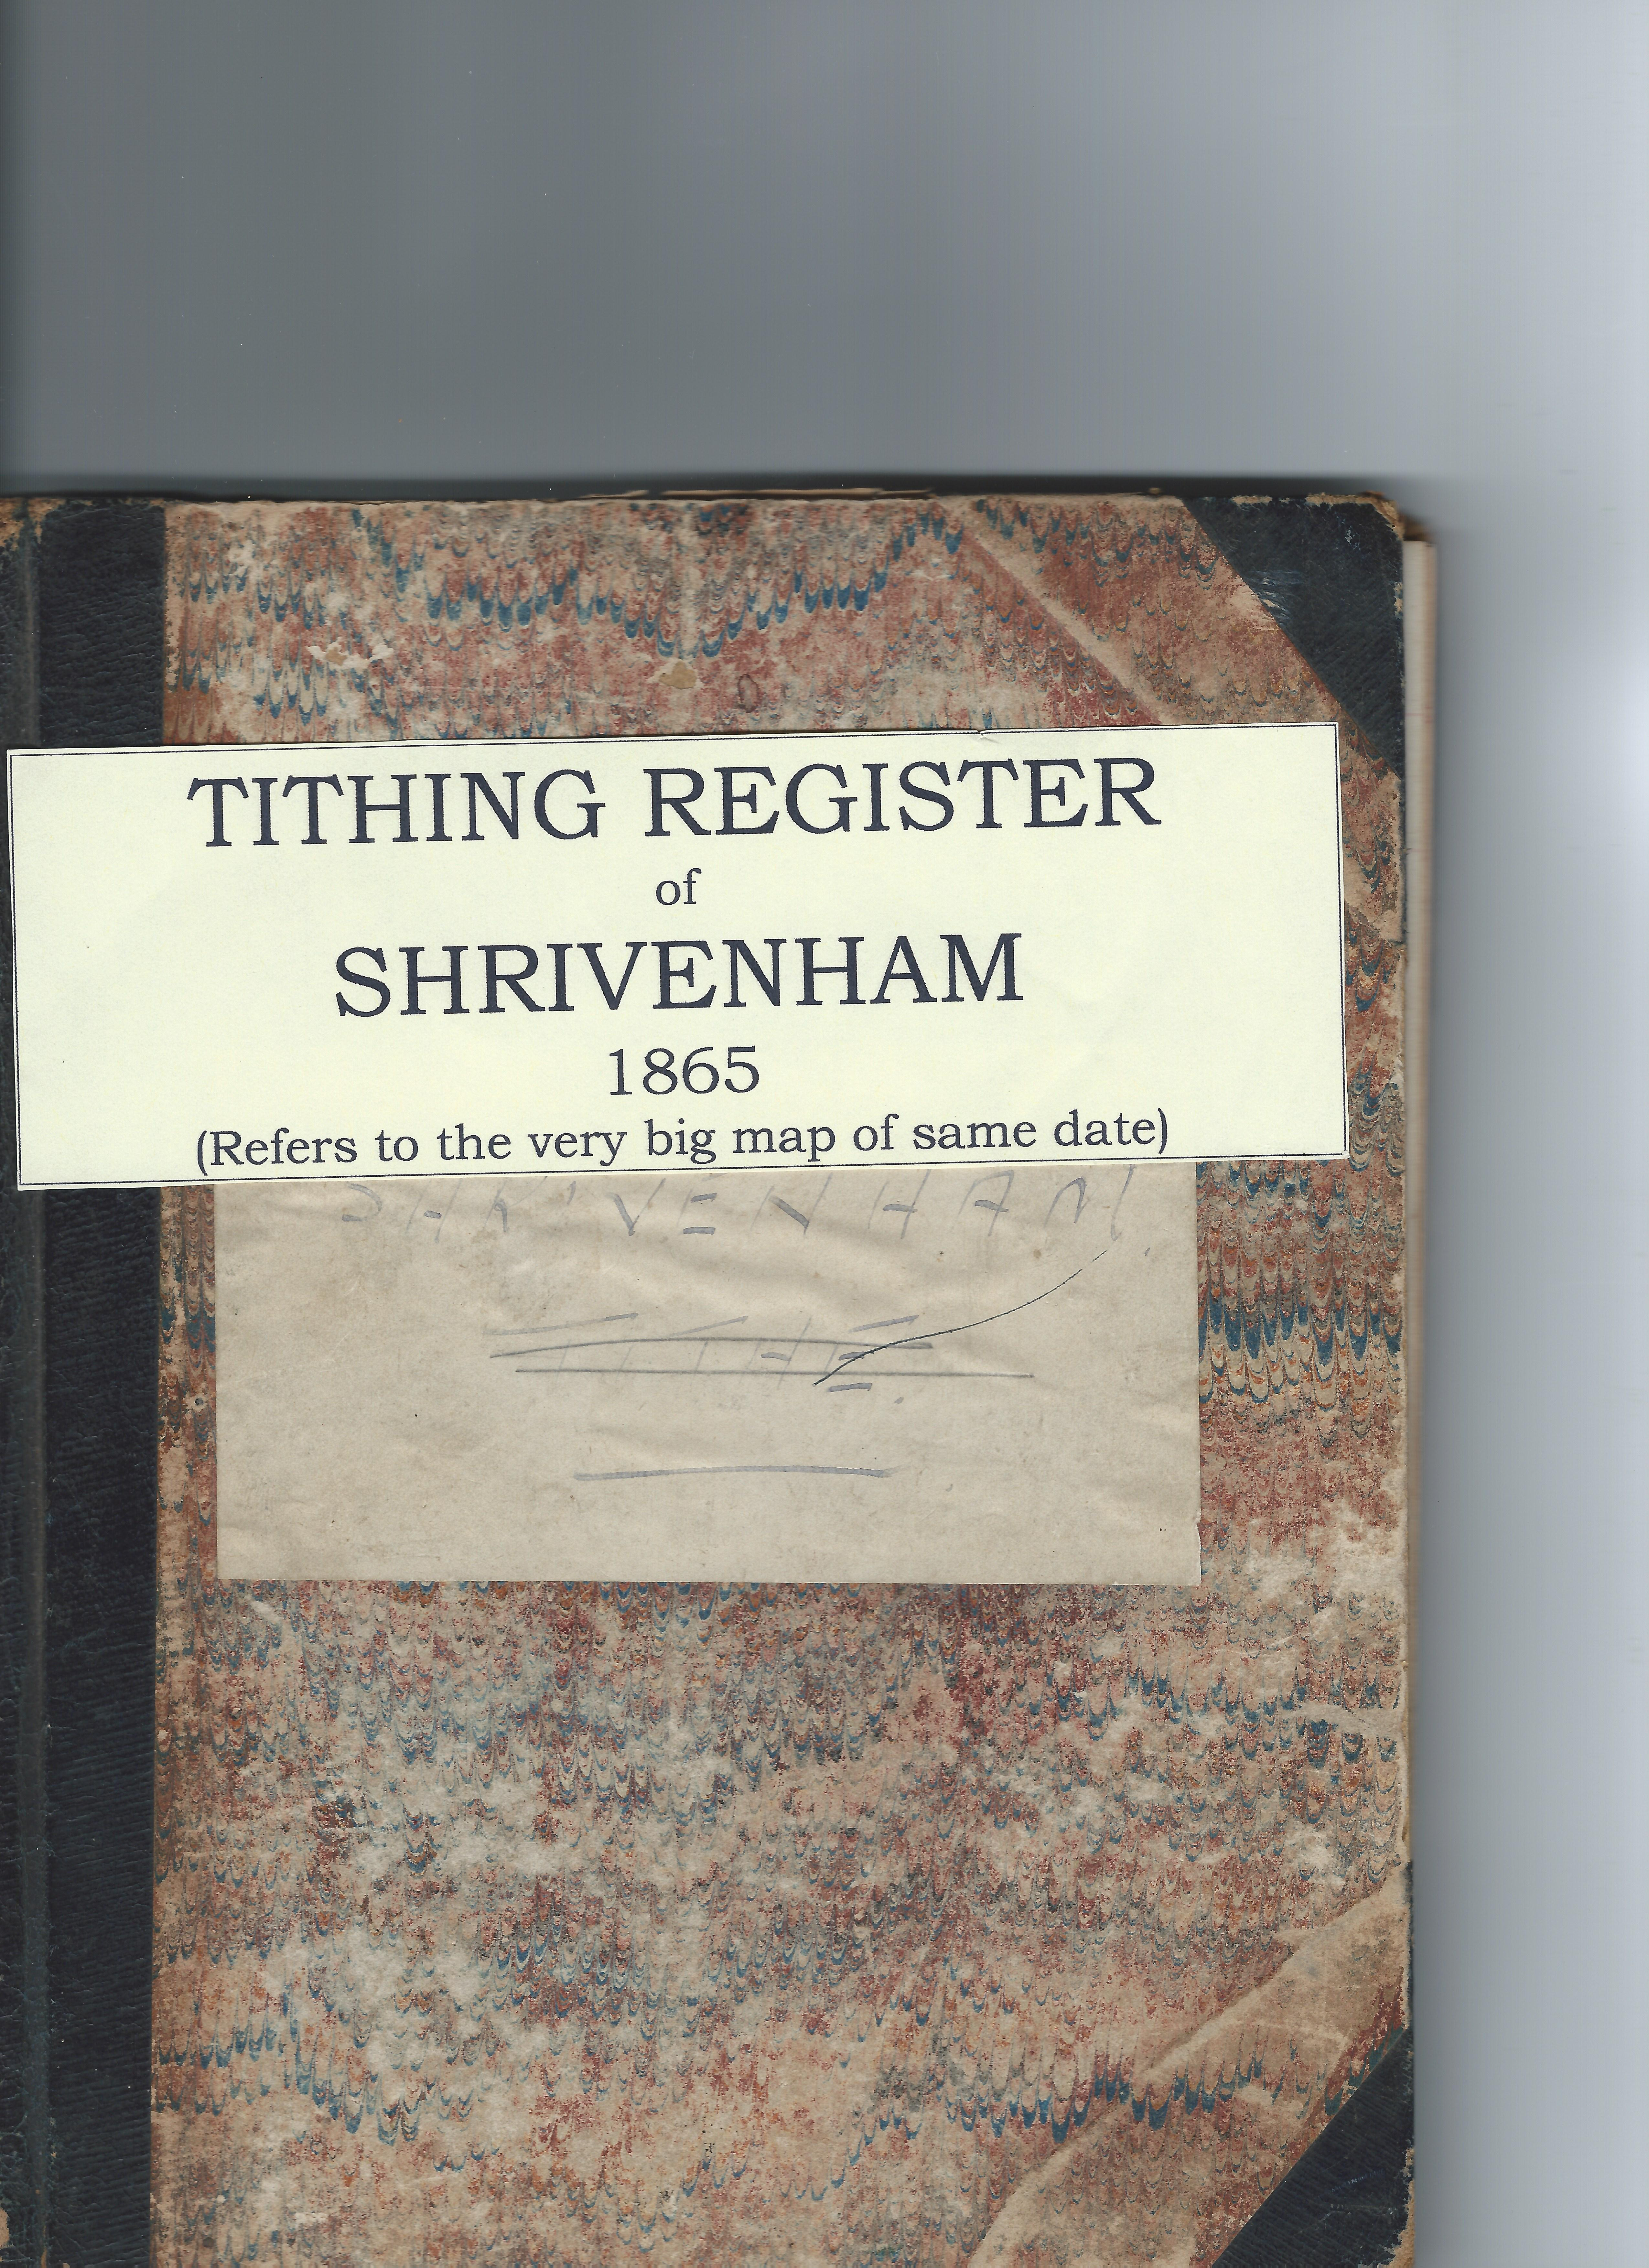 The front cover of the Tithing book